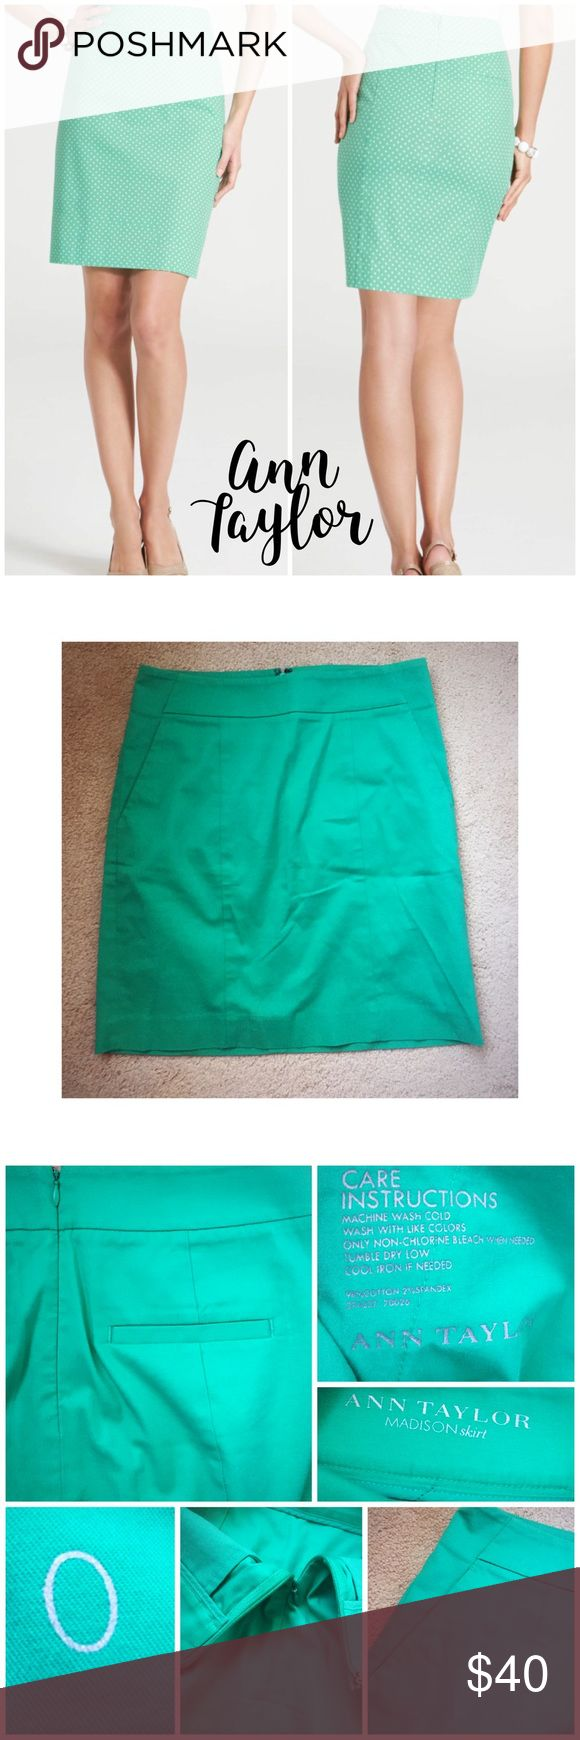 """Ann Taylor Madison pencil skirt 0 Ann Taylor Madison pencil skirt in Kelly green with 2 faux back pockets and 2 side pockets that are still sewn together from purchase! 98% cotton, 2% spandex with back zipper closure with clasp at top waist. Perfect condition, just wrinkled! 14"""" flat waist, 18.5"""" long💖 Ann Taylor Skirts Pencil"""